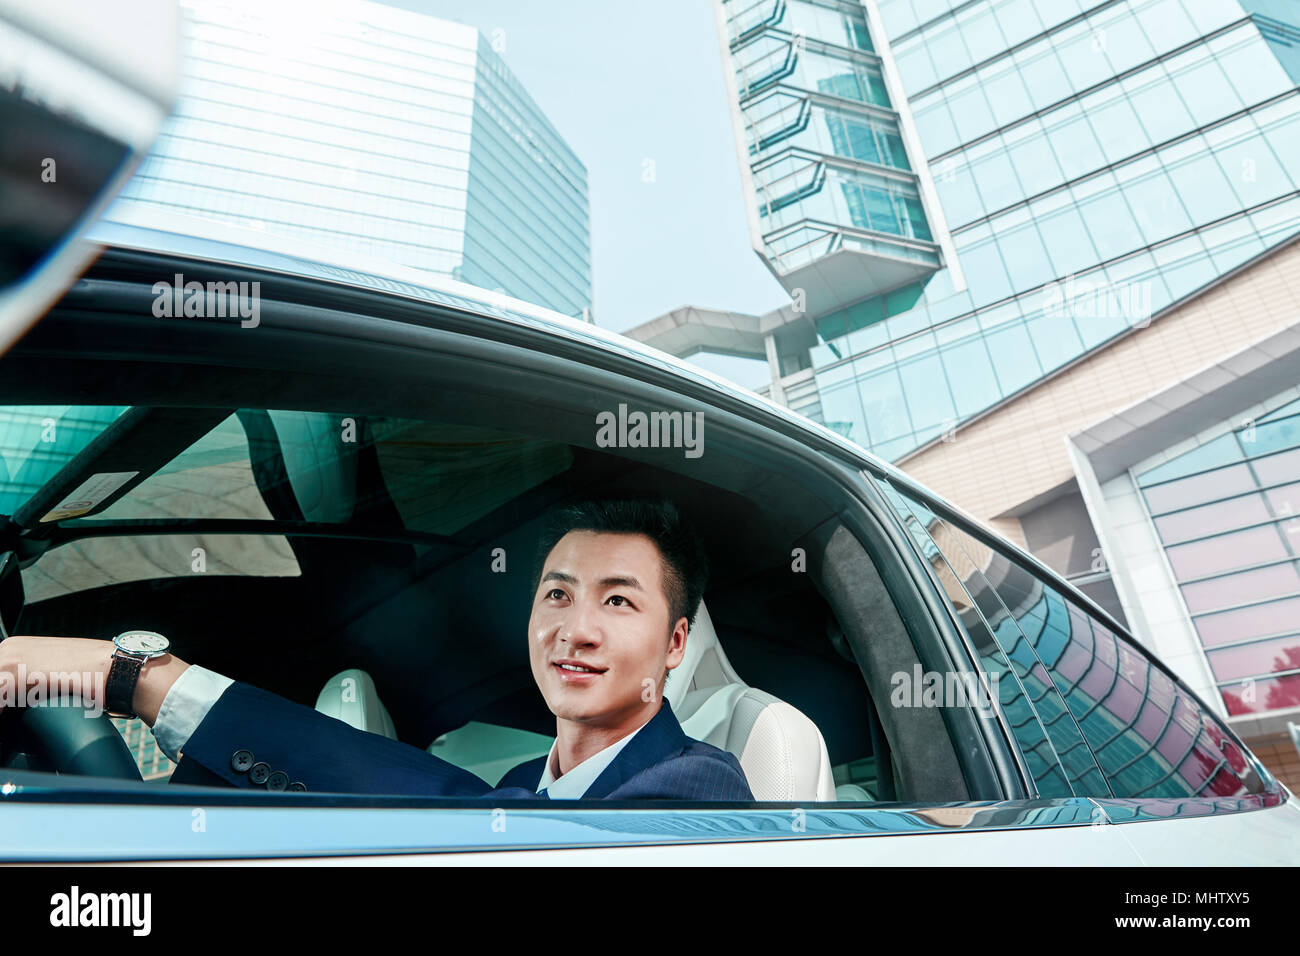 The business man driving a car - Stock Image